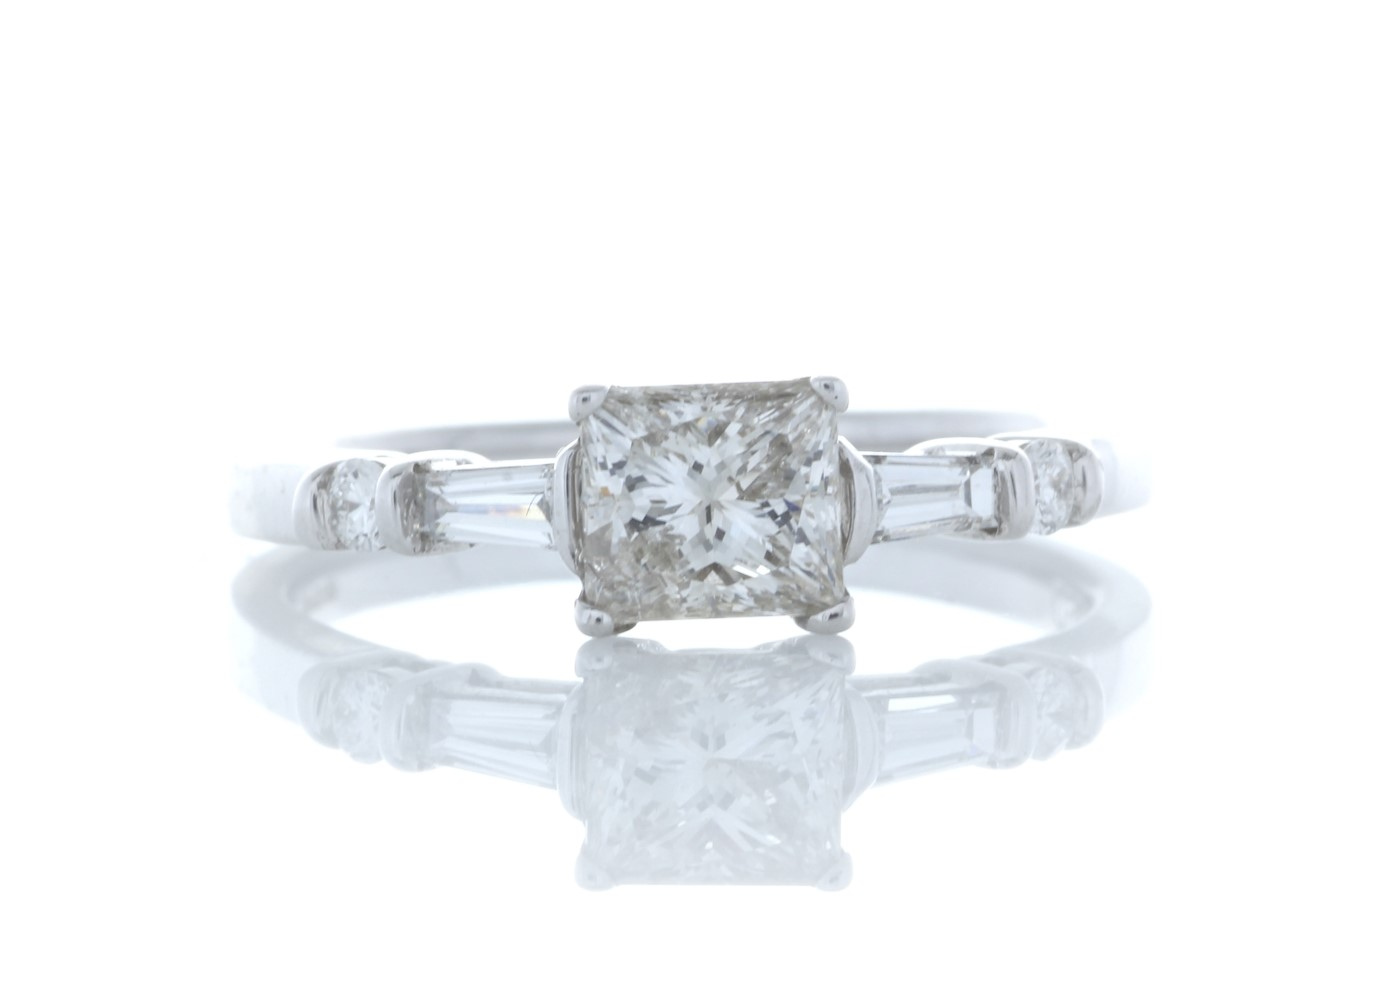 18ct White Gold Single Stone Princess Cut Diamond Ring With Set Shoulders (0.72) 0.96 Carats